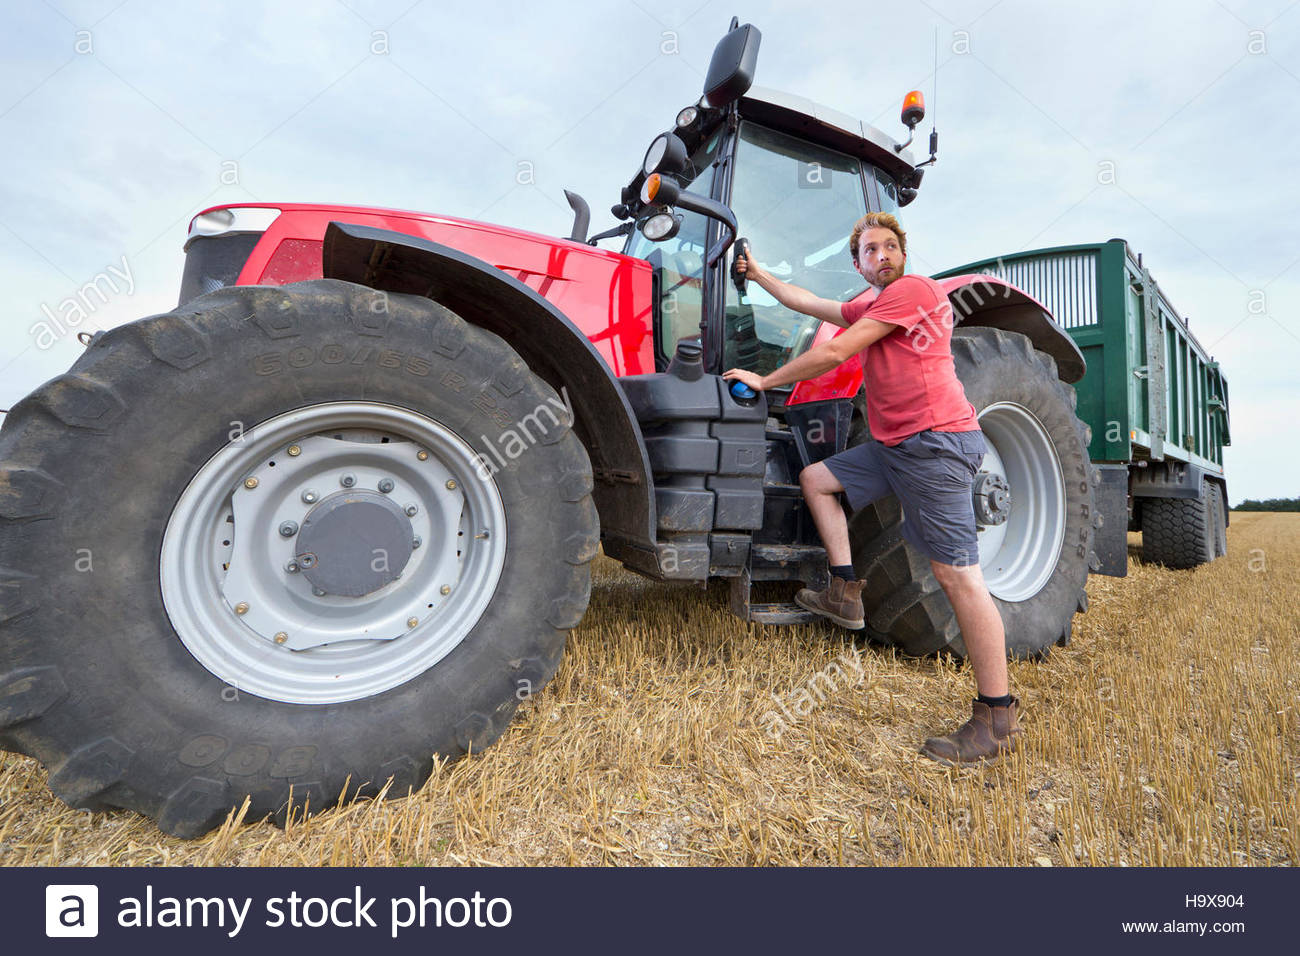 Farmer Climbing Into Cab Of Tractor At Harvest Time - Stock Image